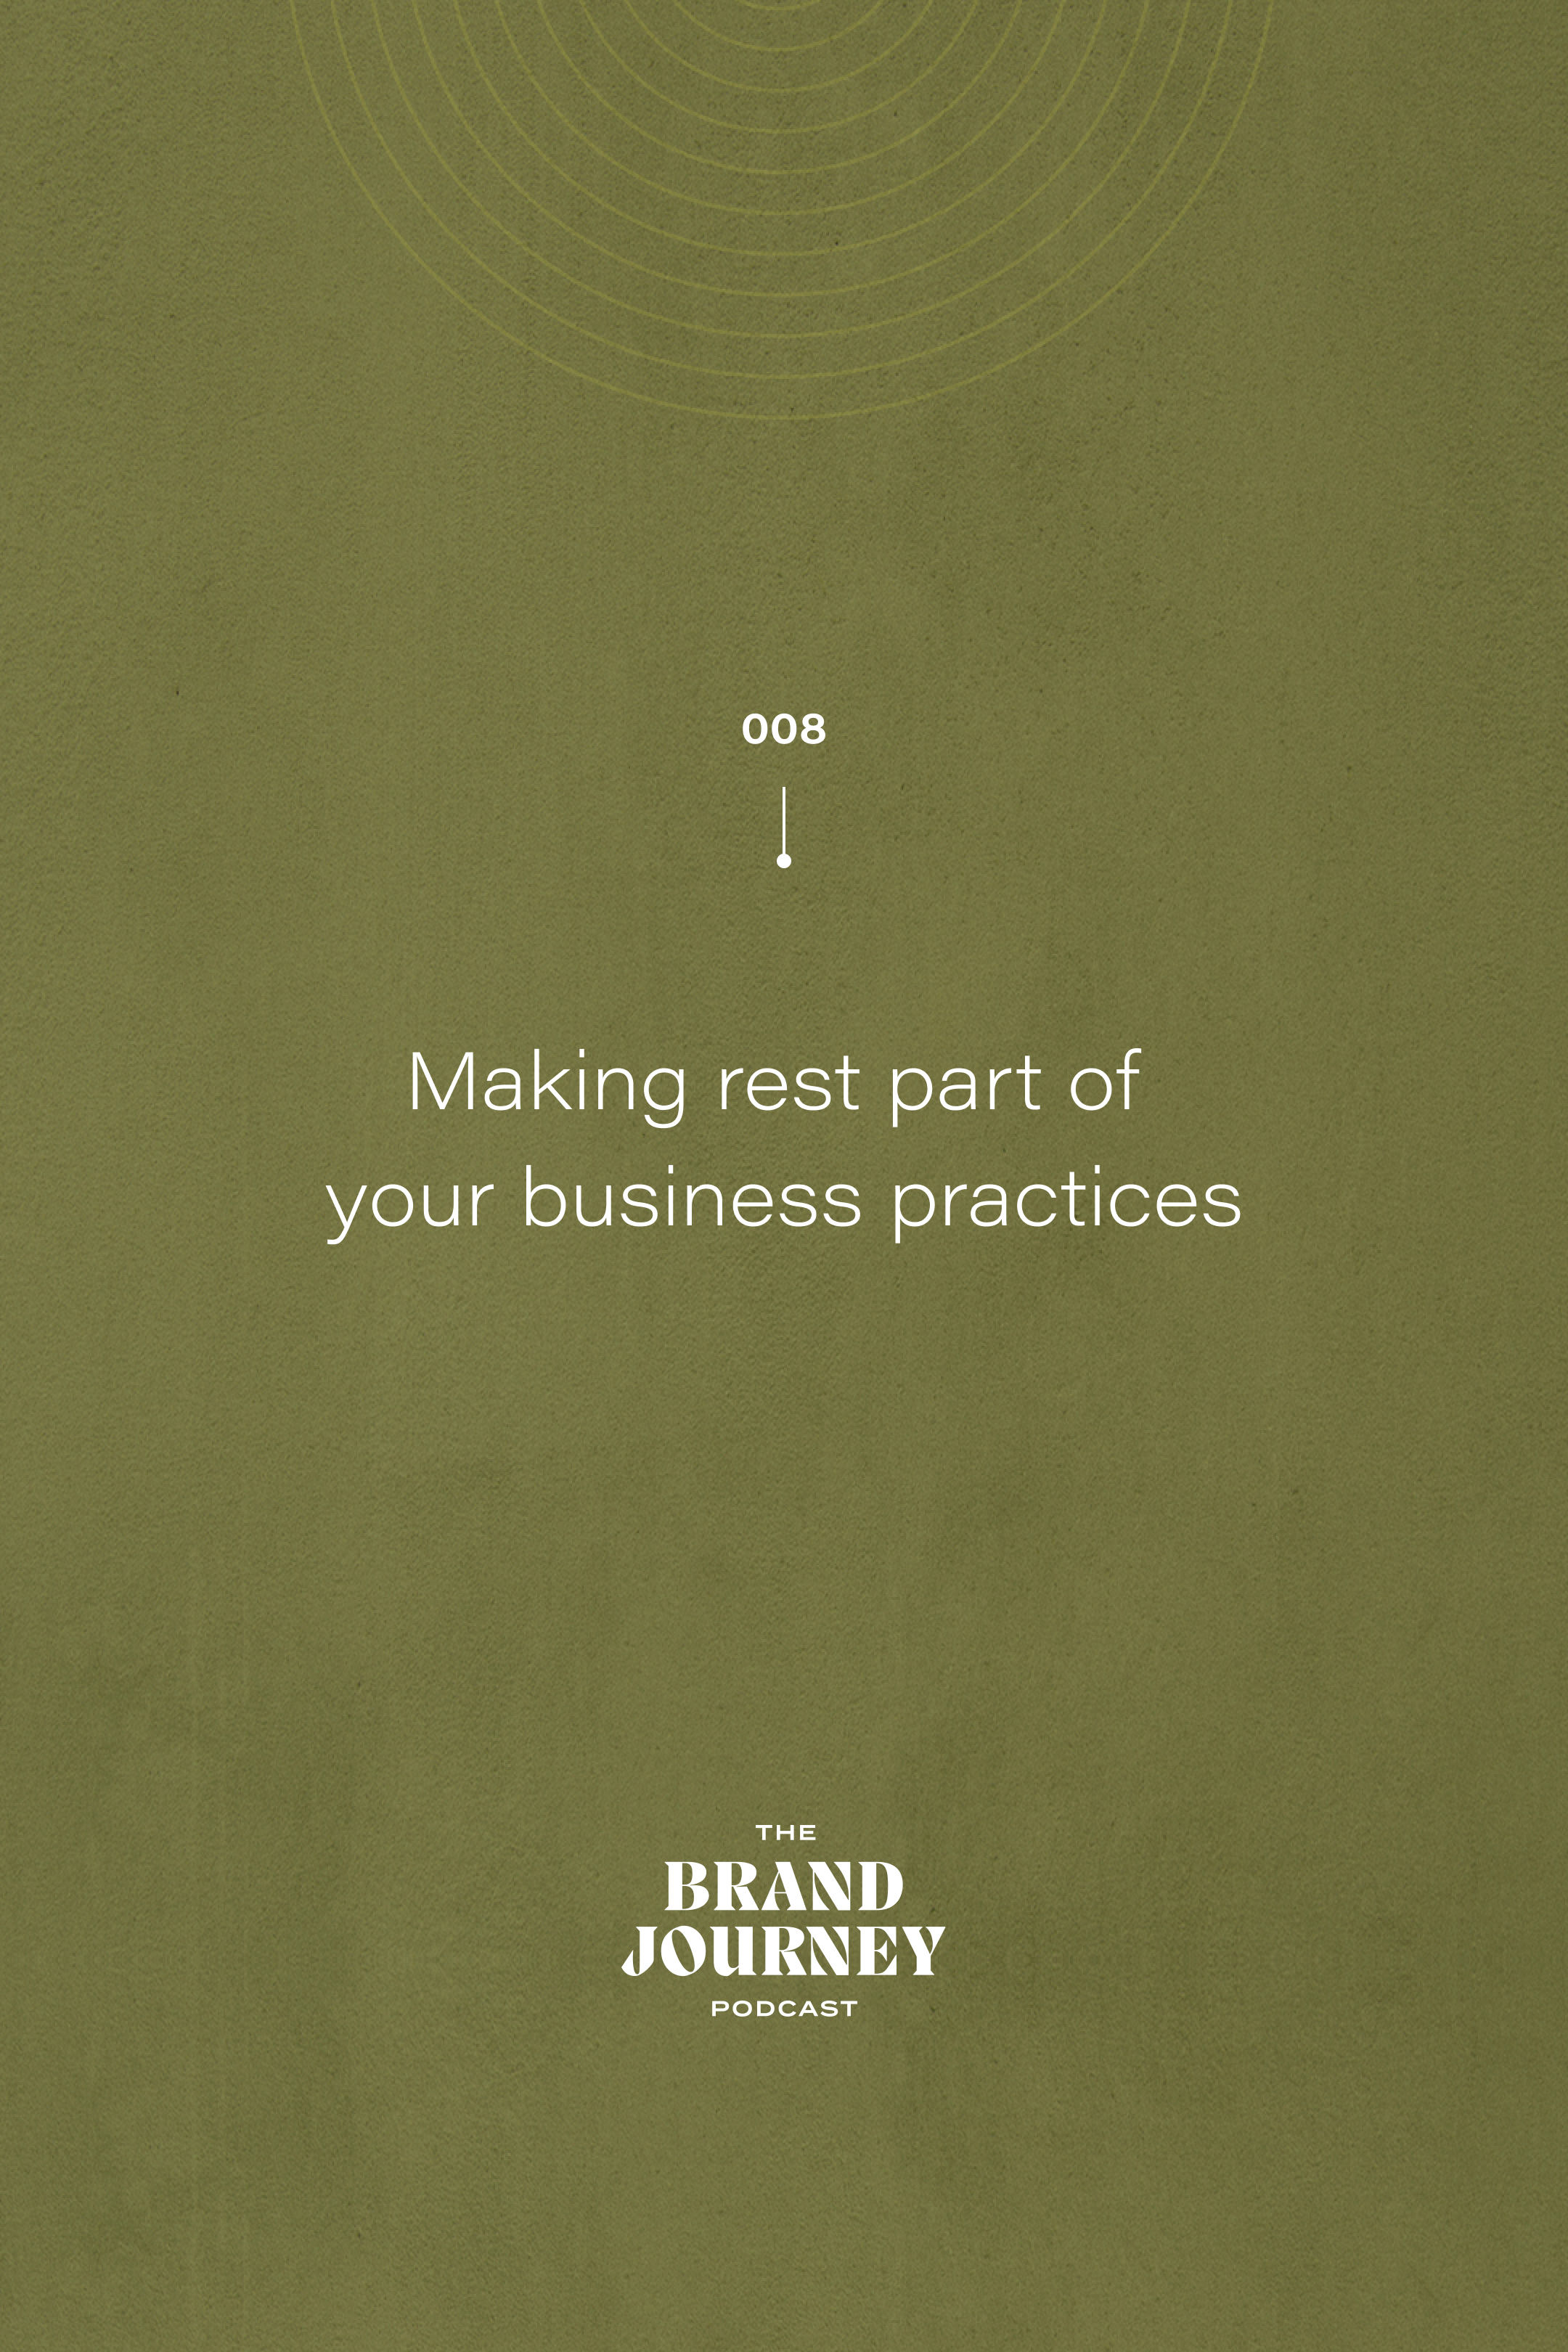 Making space for rest part of your business practices